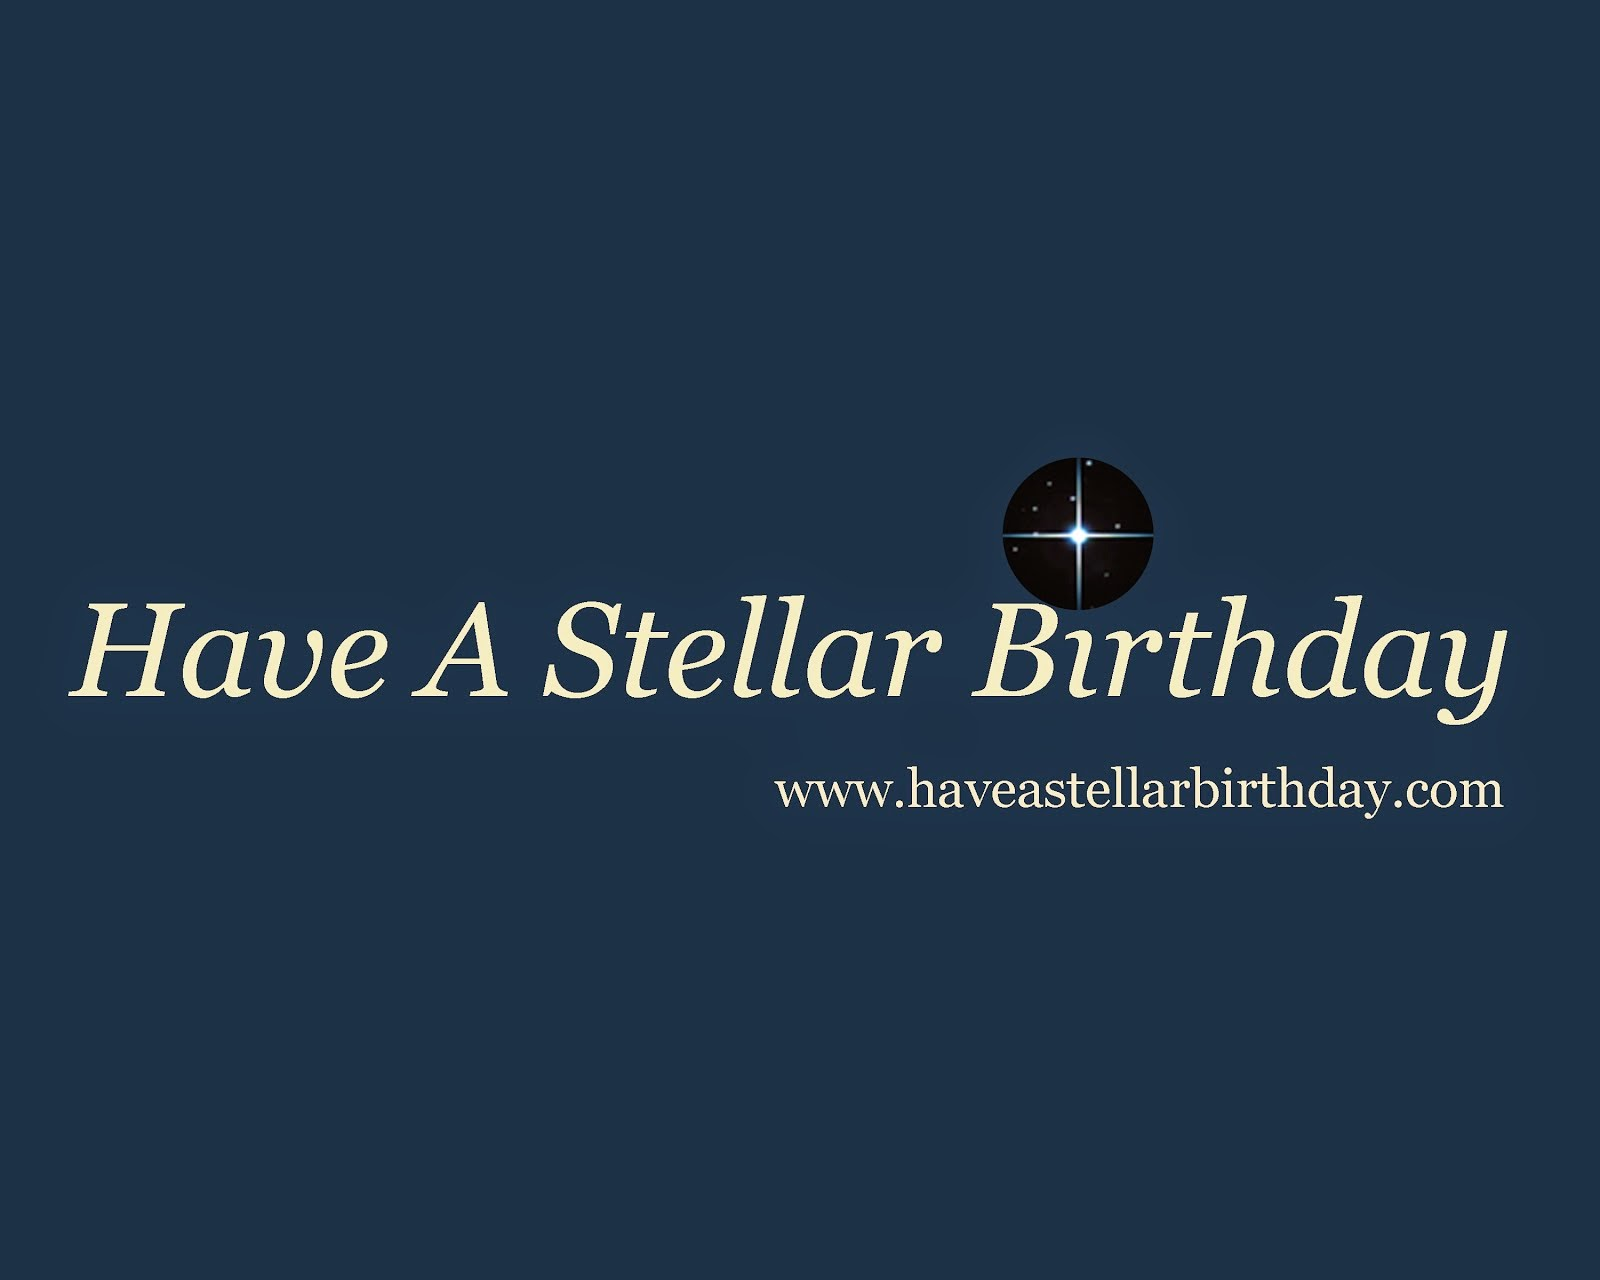 Have A Stellar Birthday